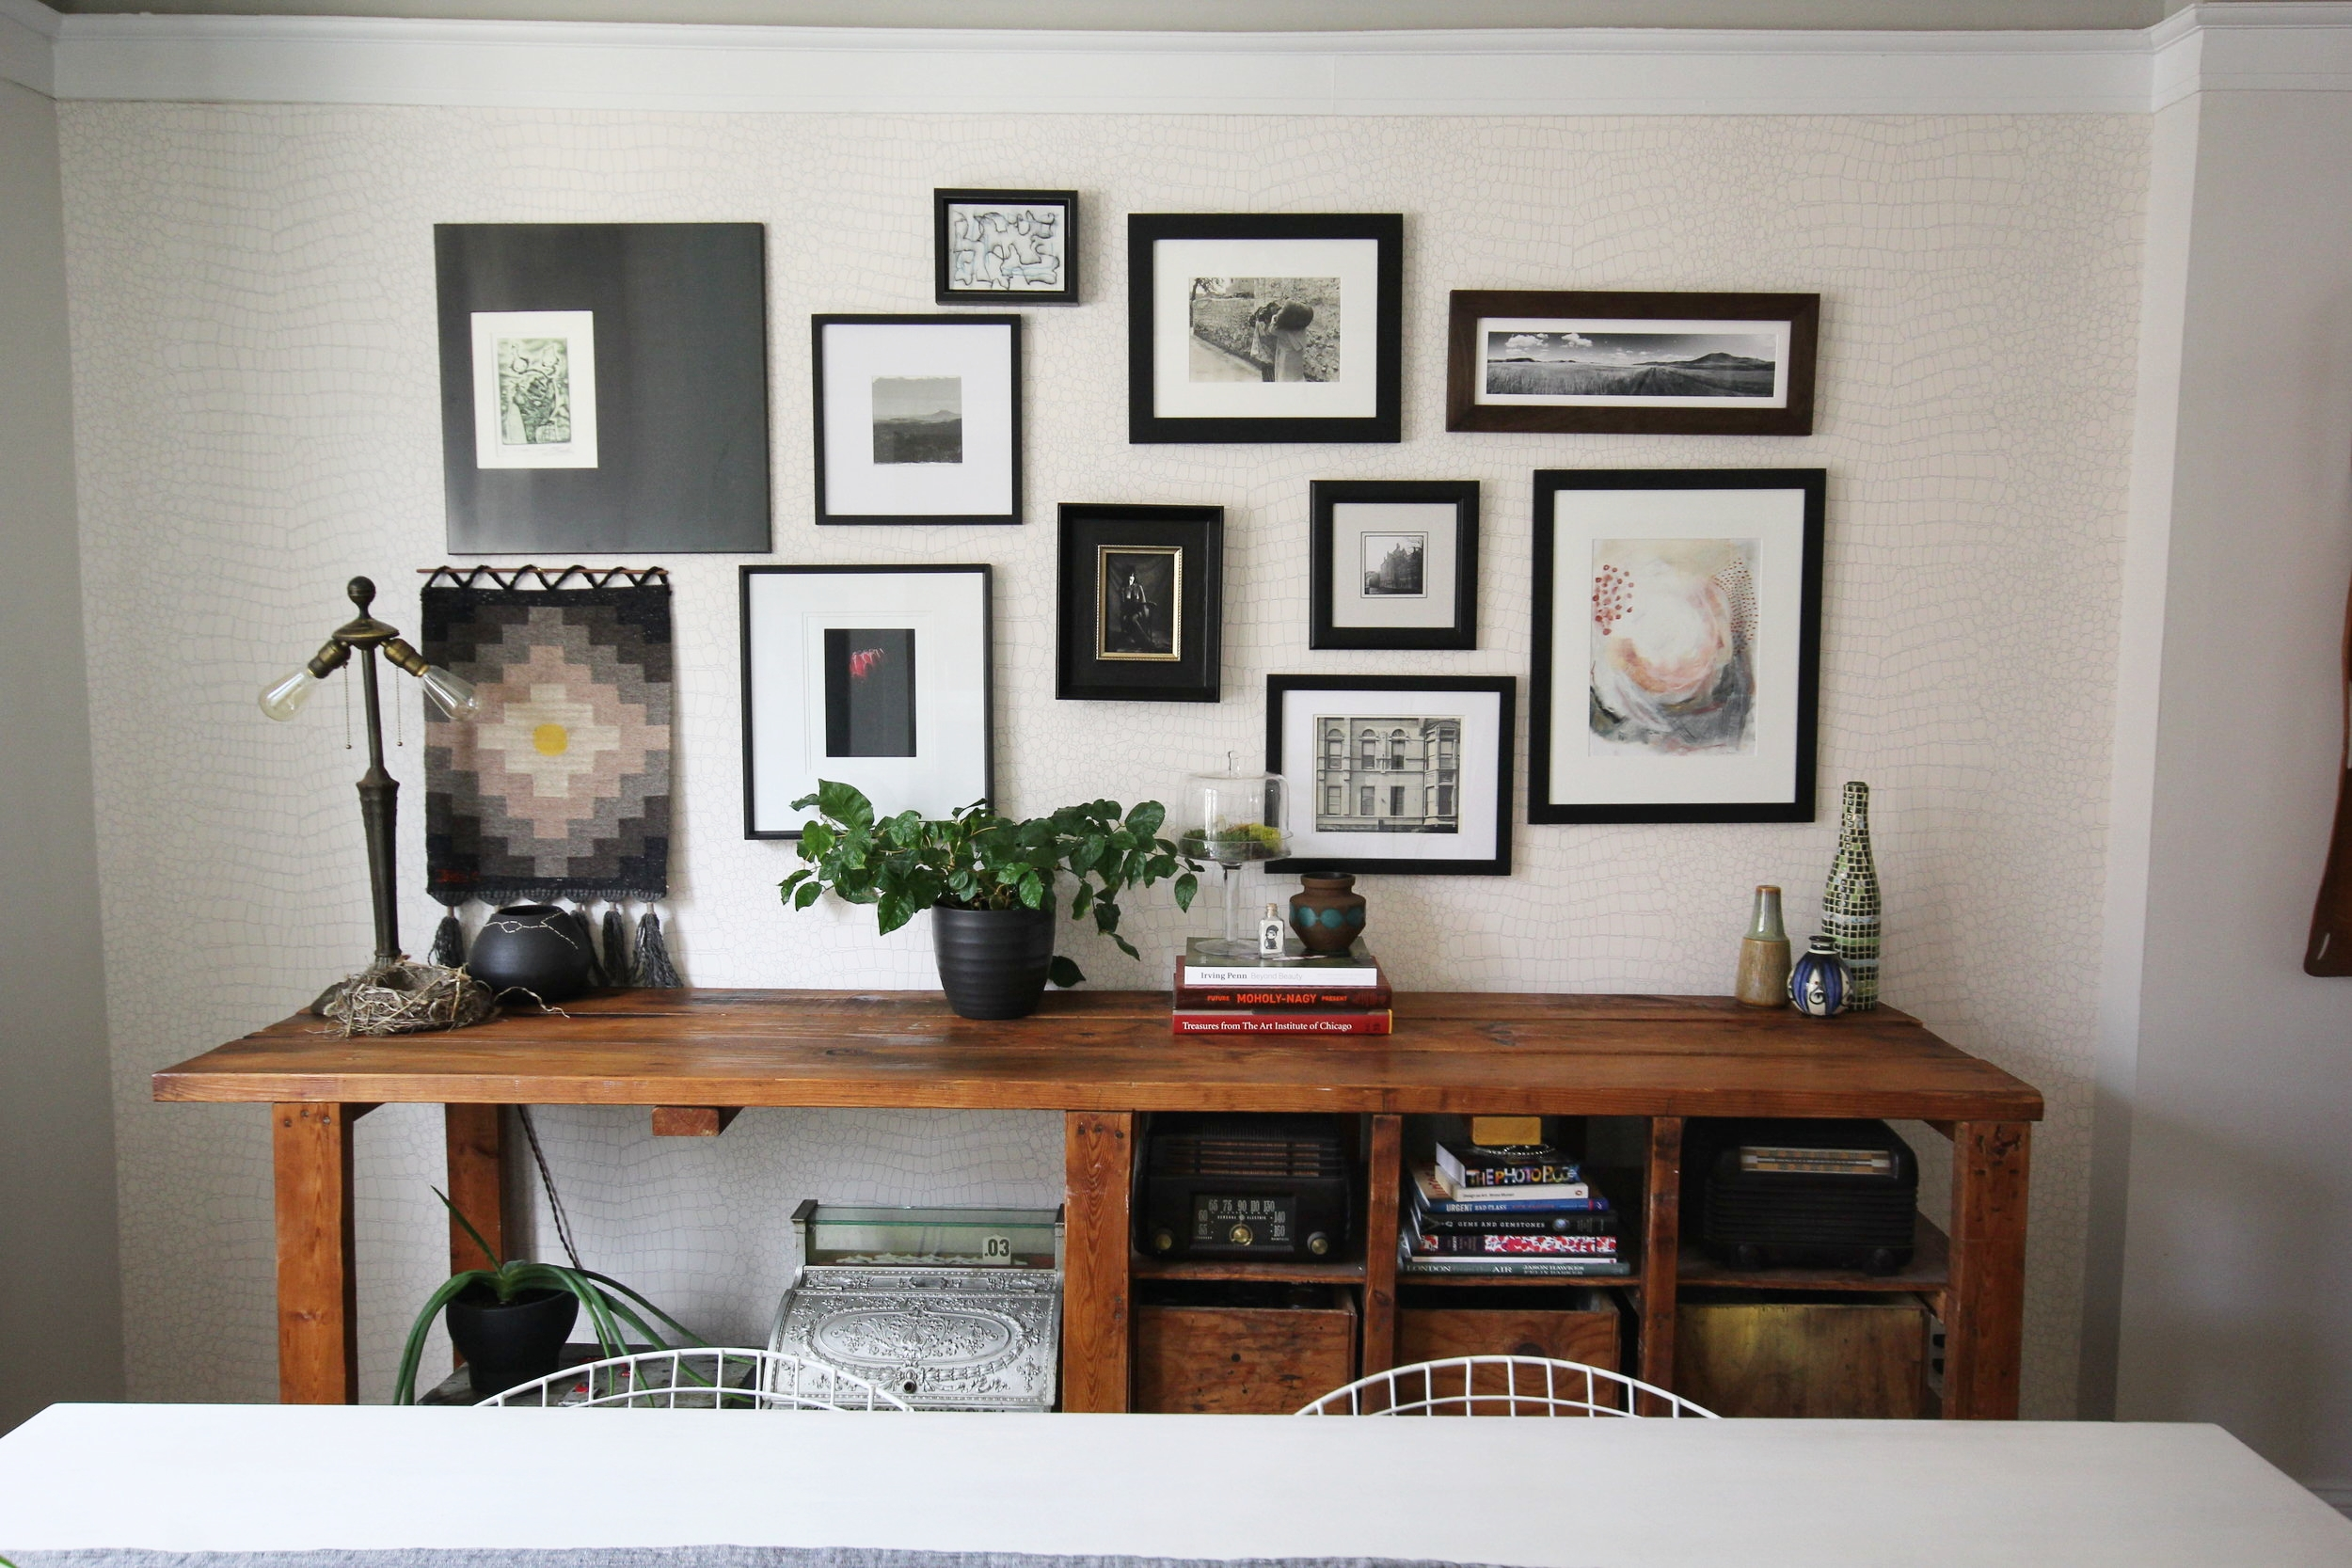 Wall with framed photos above a side board